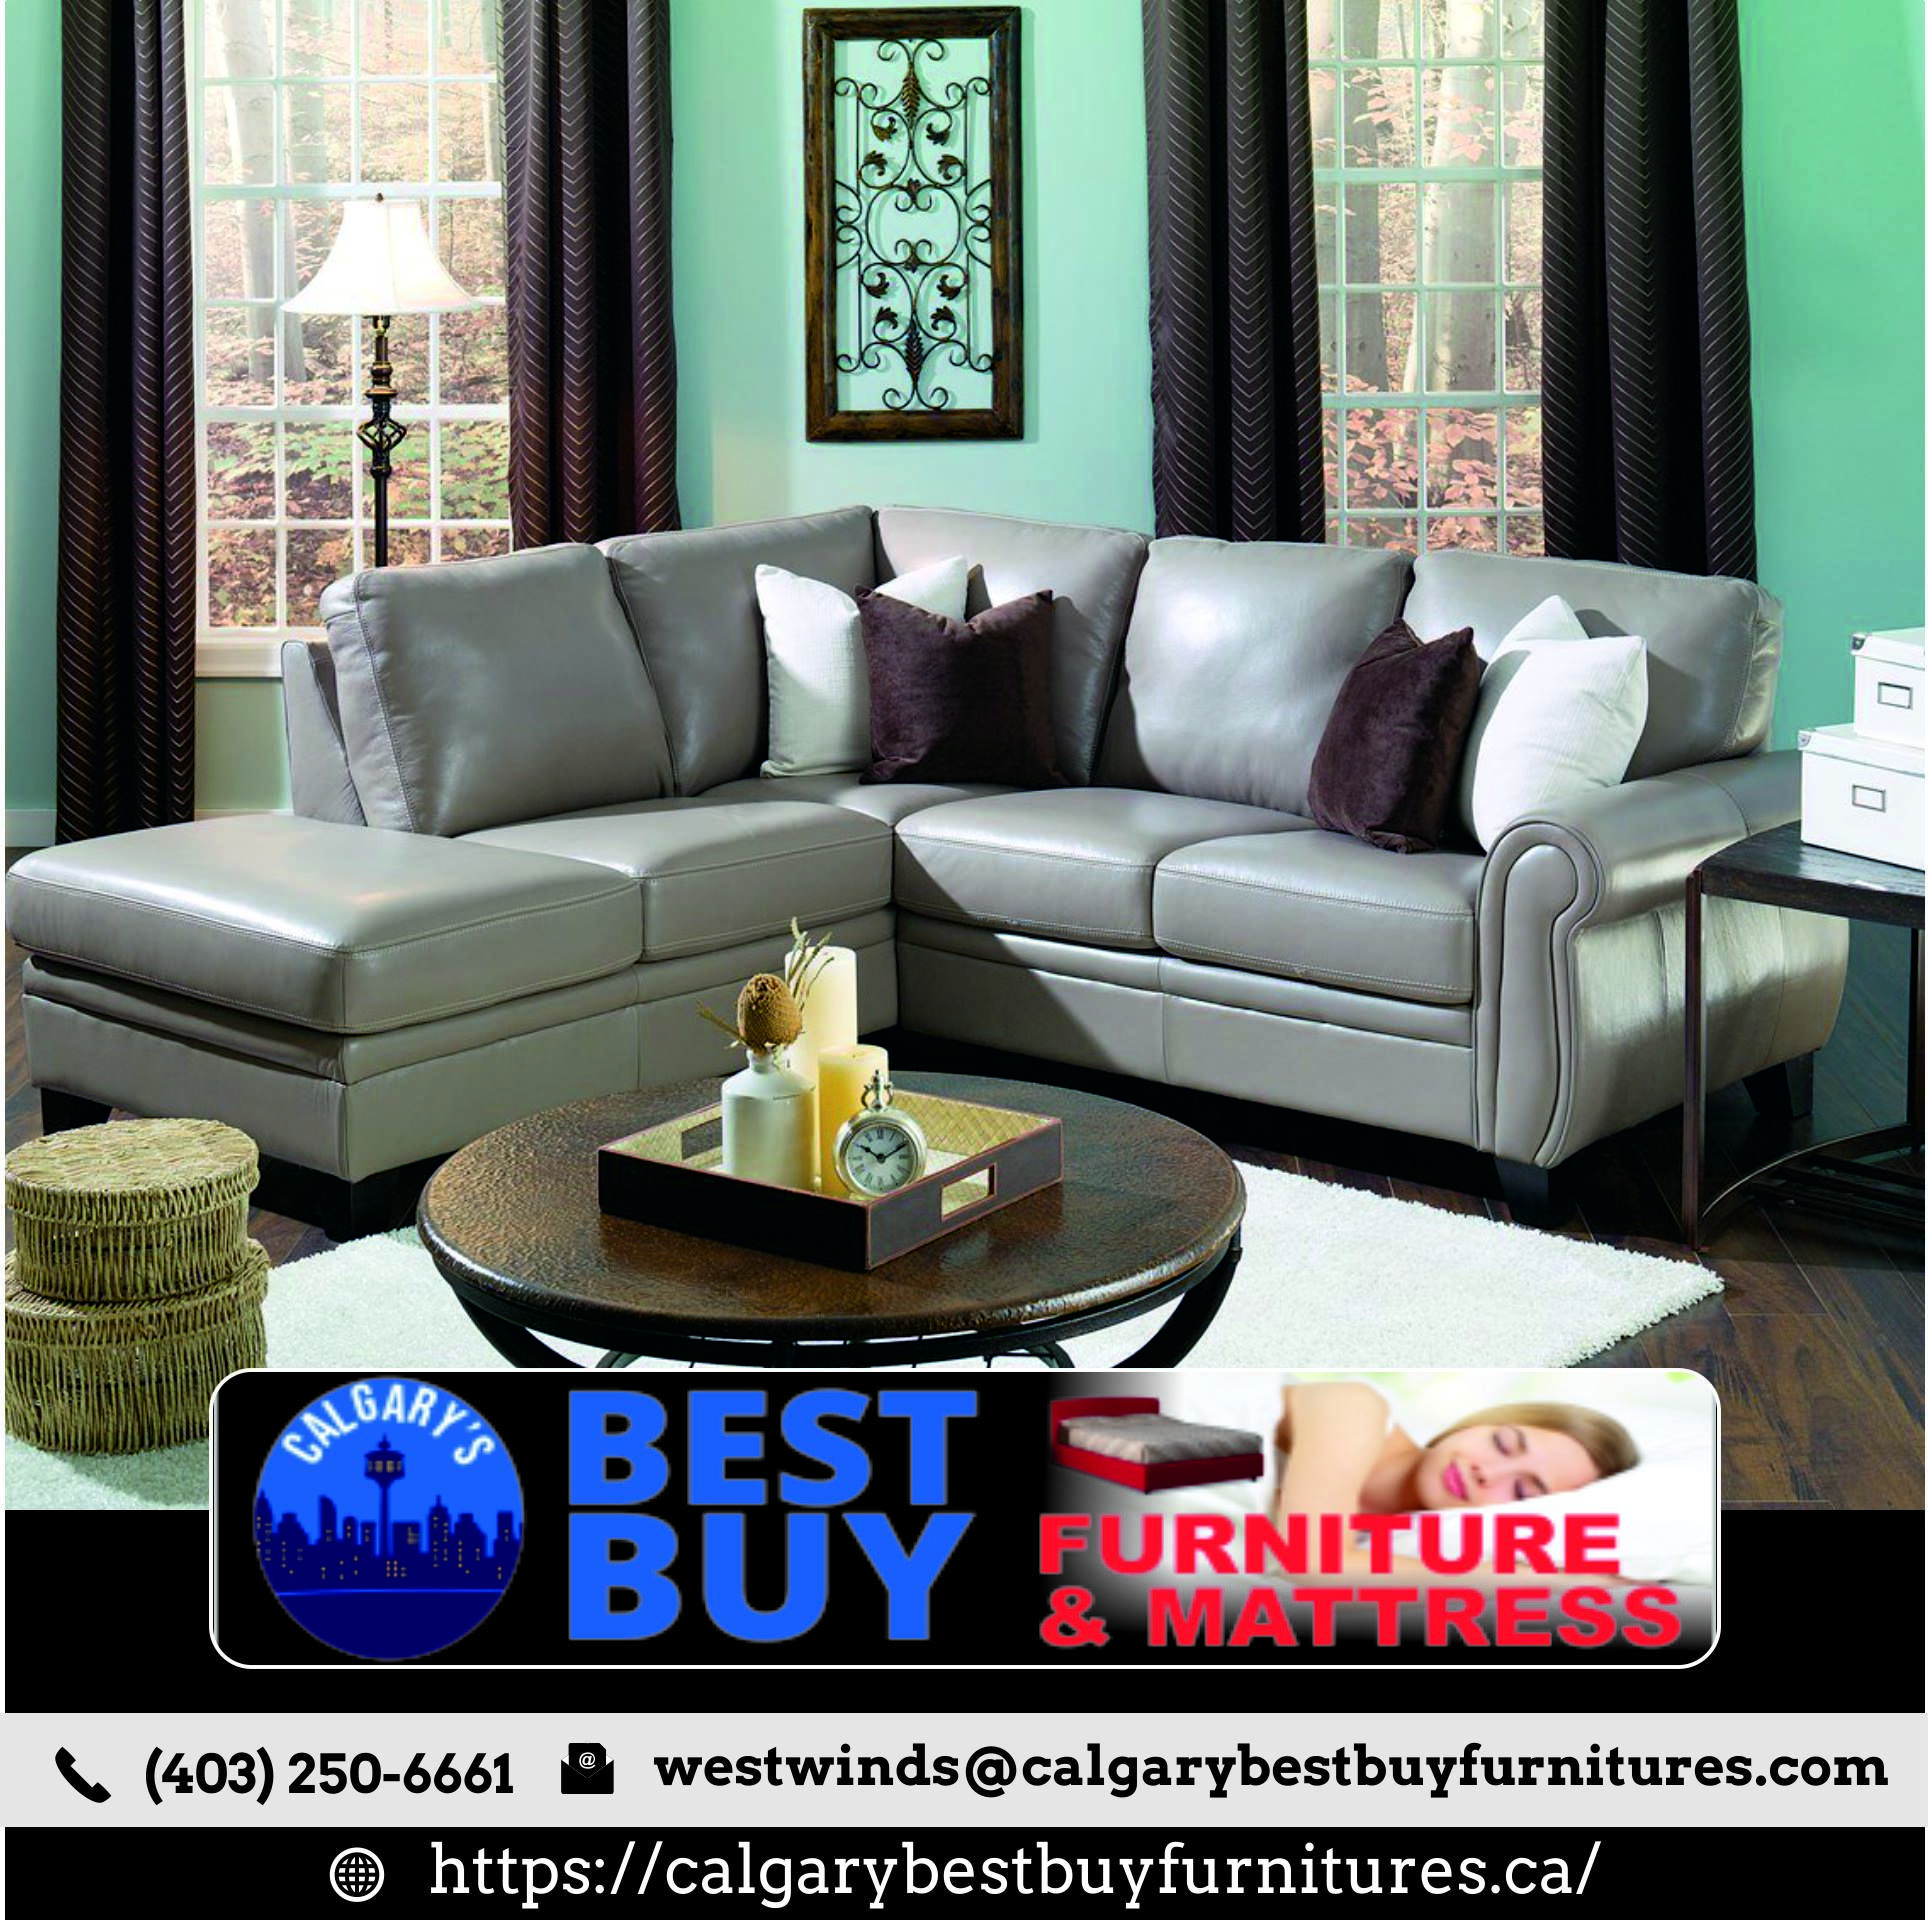 Calgary Best Buy Furniture offers a tremendous range of ...